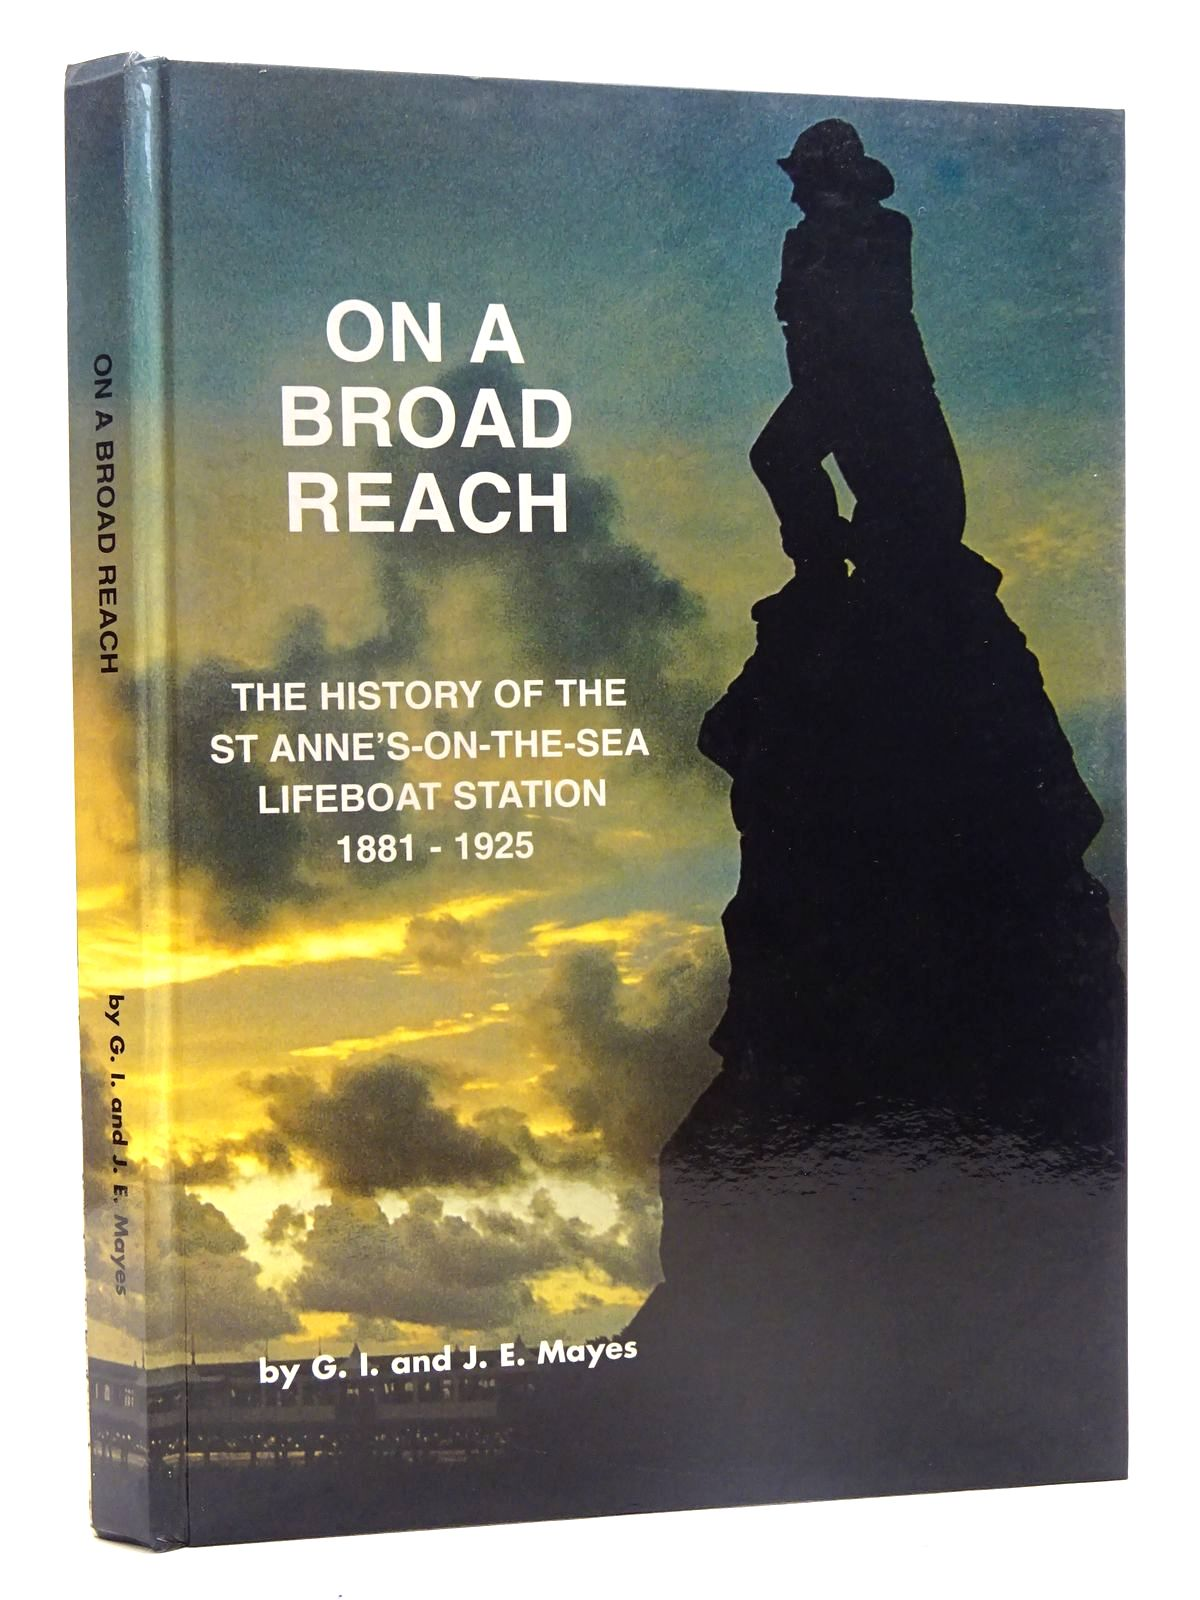 Photo of ON A BROAD REACH THE HISTORY OF THE ST ANNE'S-ON-THE-SEA LIFEBOAT STATION 1881 - 1925- Stock Number: 2125464